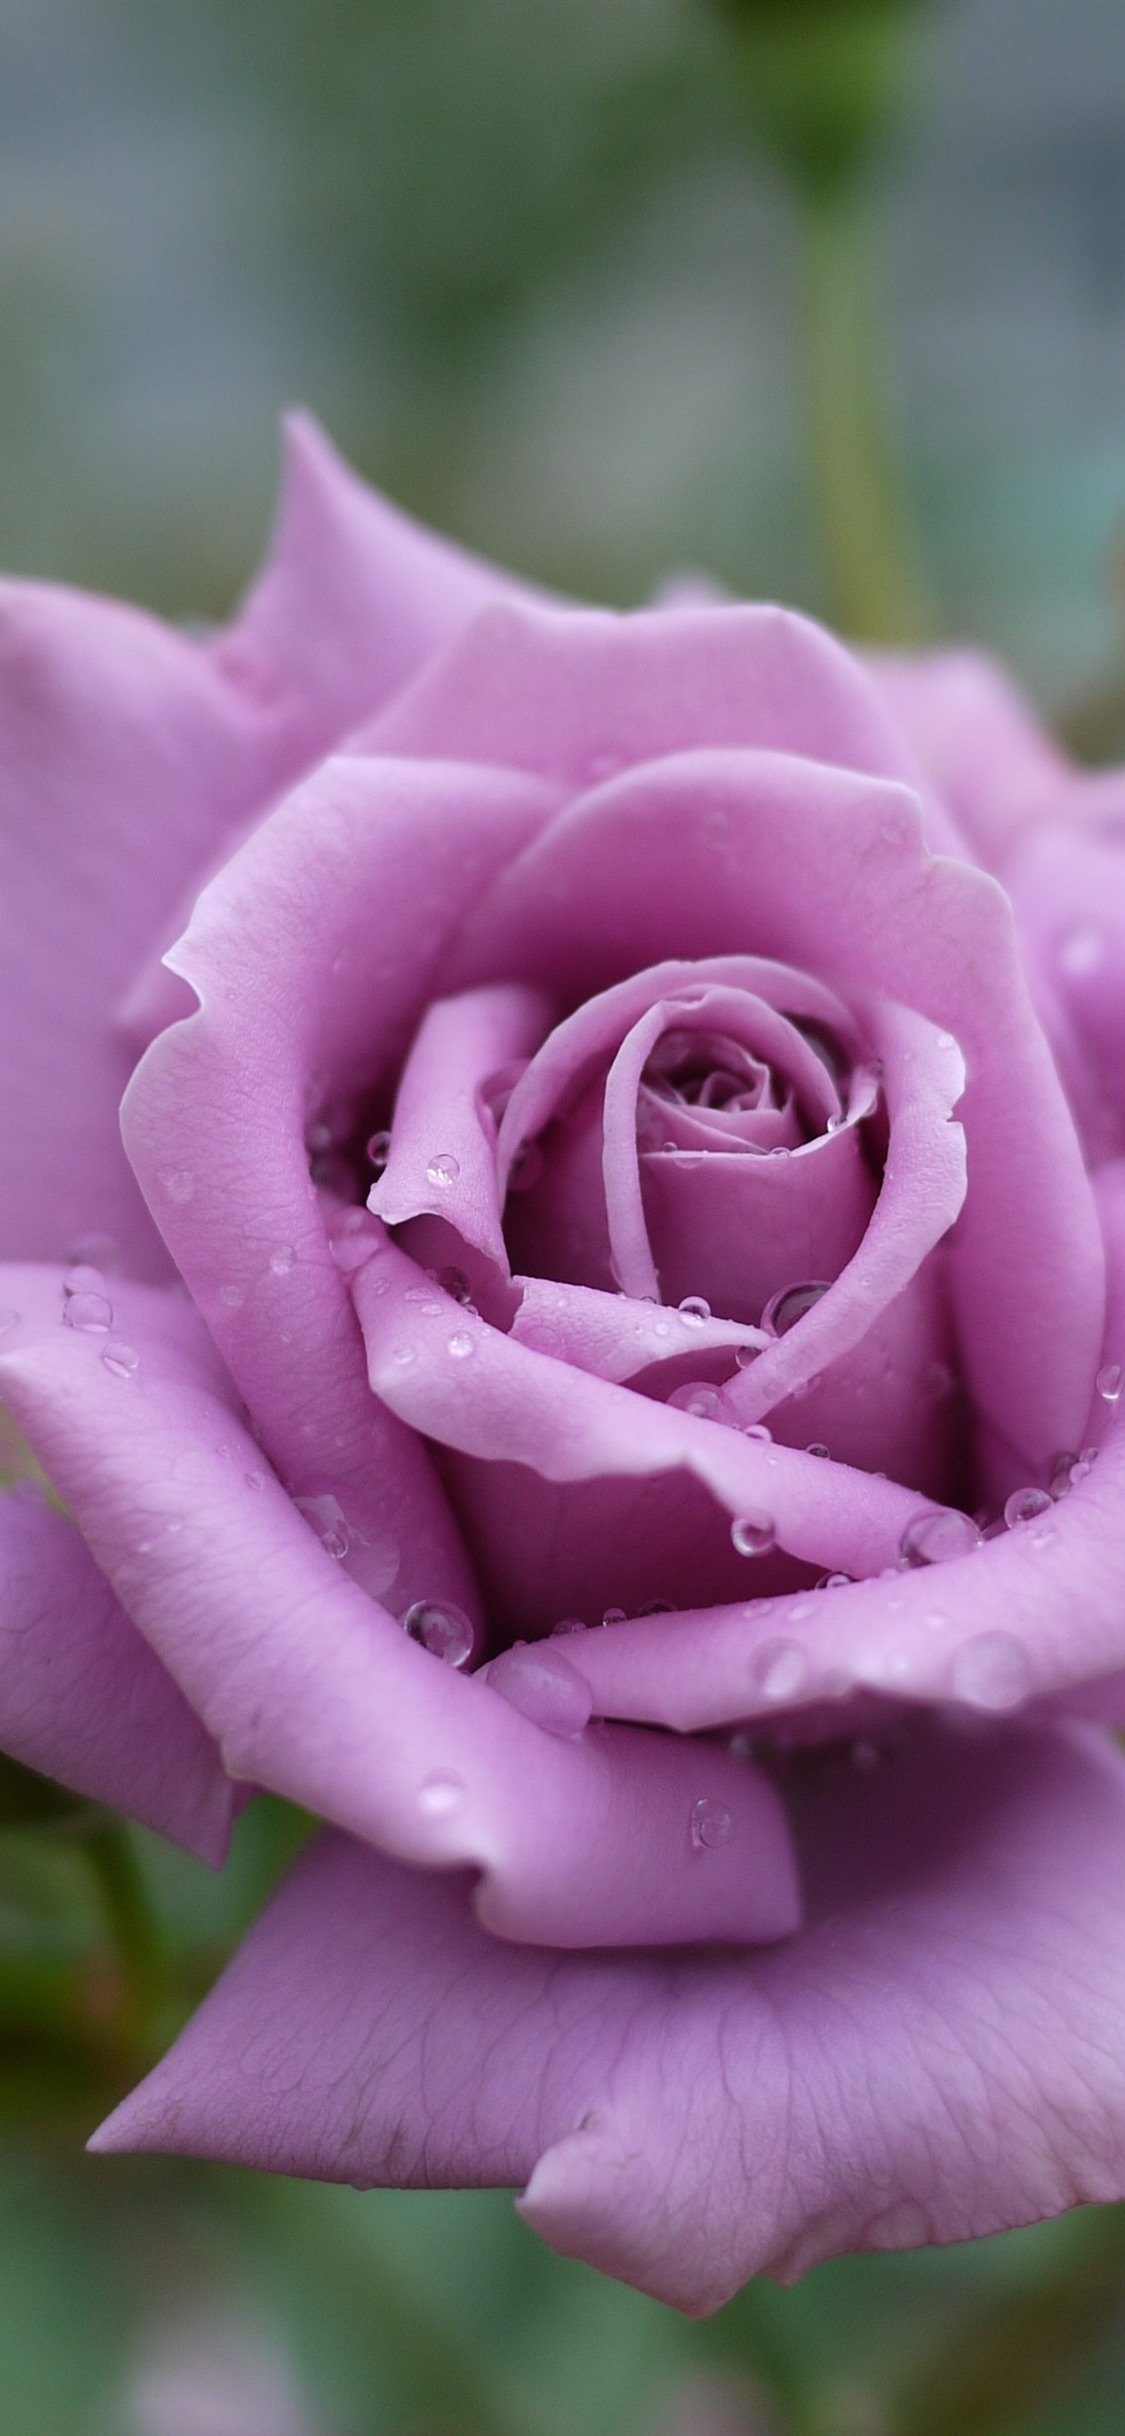 Light Purple Rose Petals Water Droplets 1125x2436 Iphone 11 Pro Xs X Wallpaper Background Picture Image